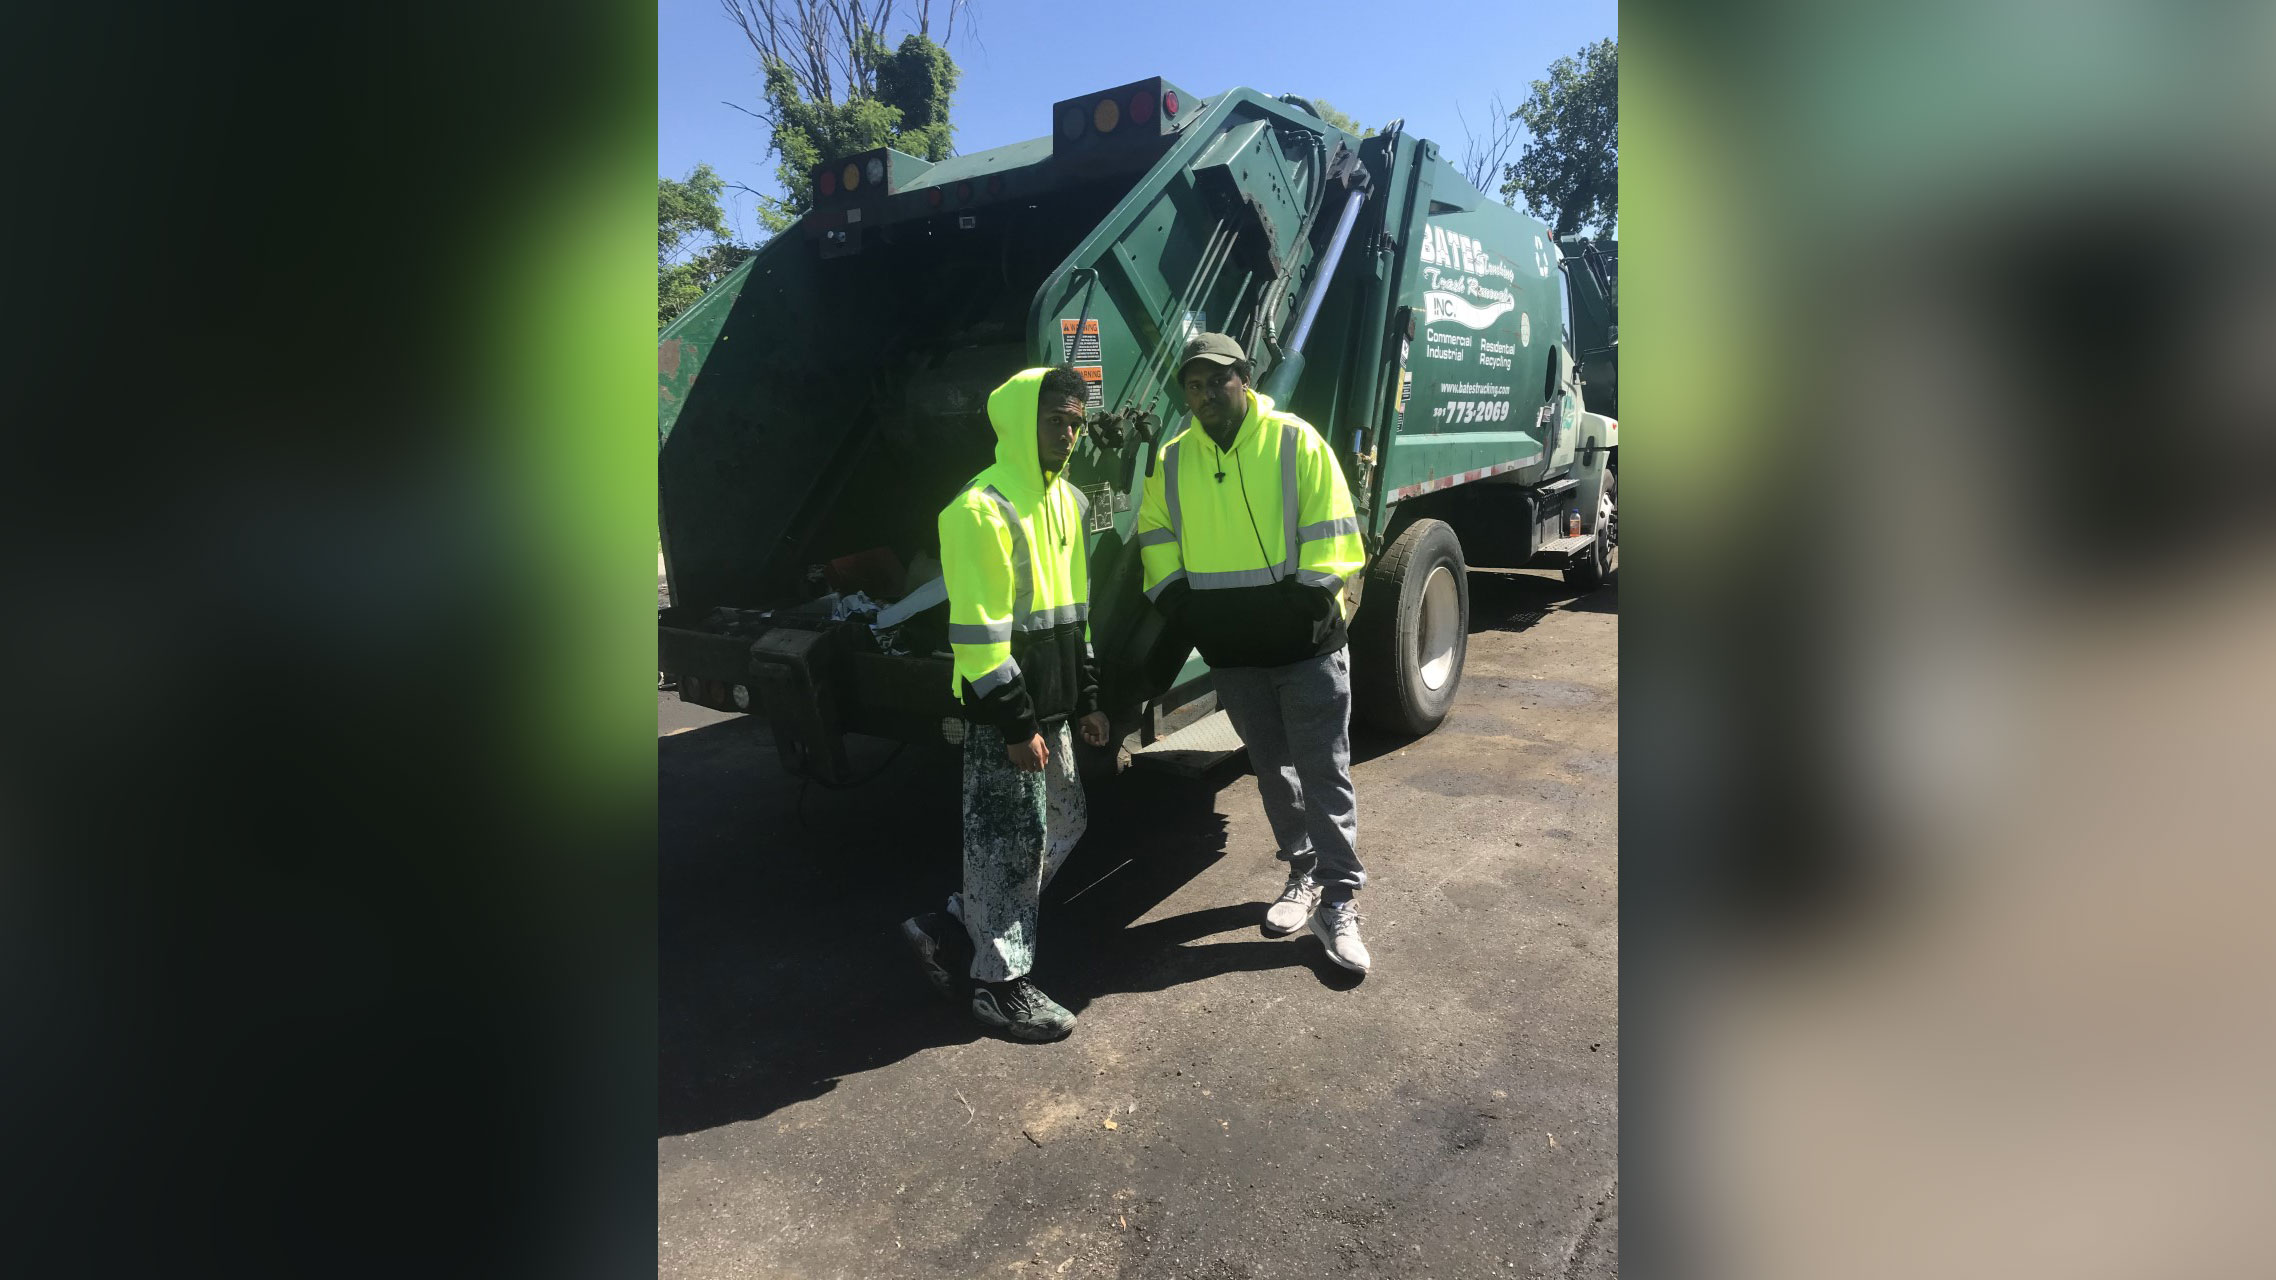 Two people in front of a garbage truck